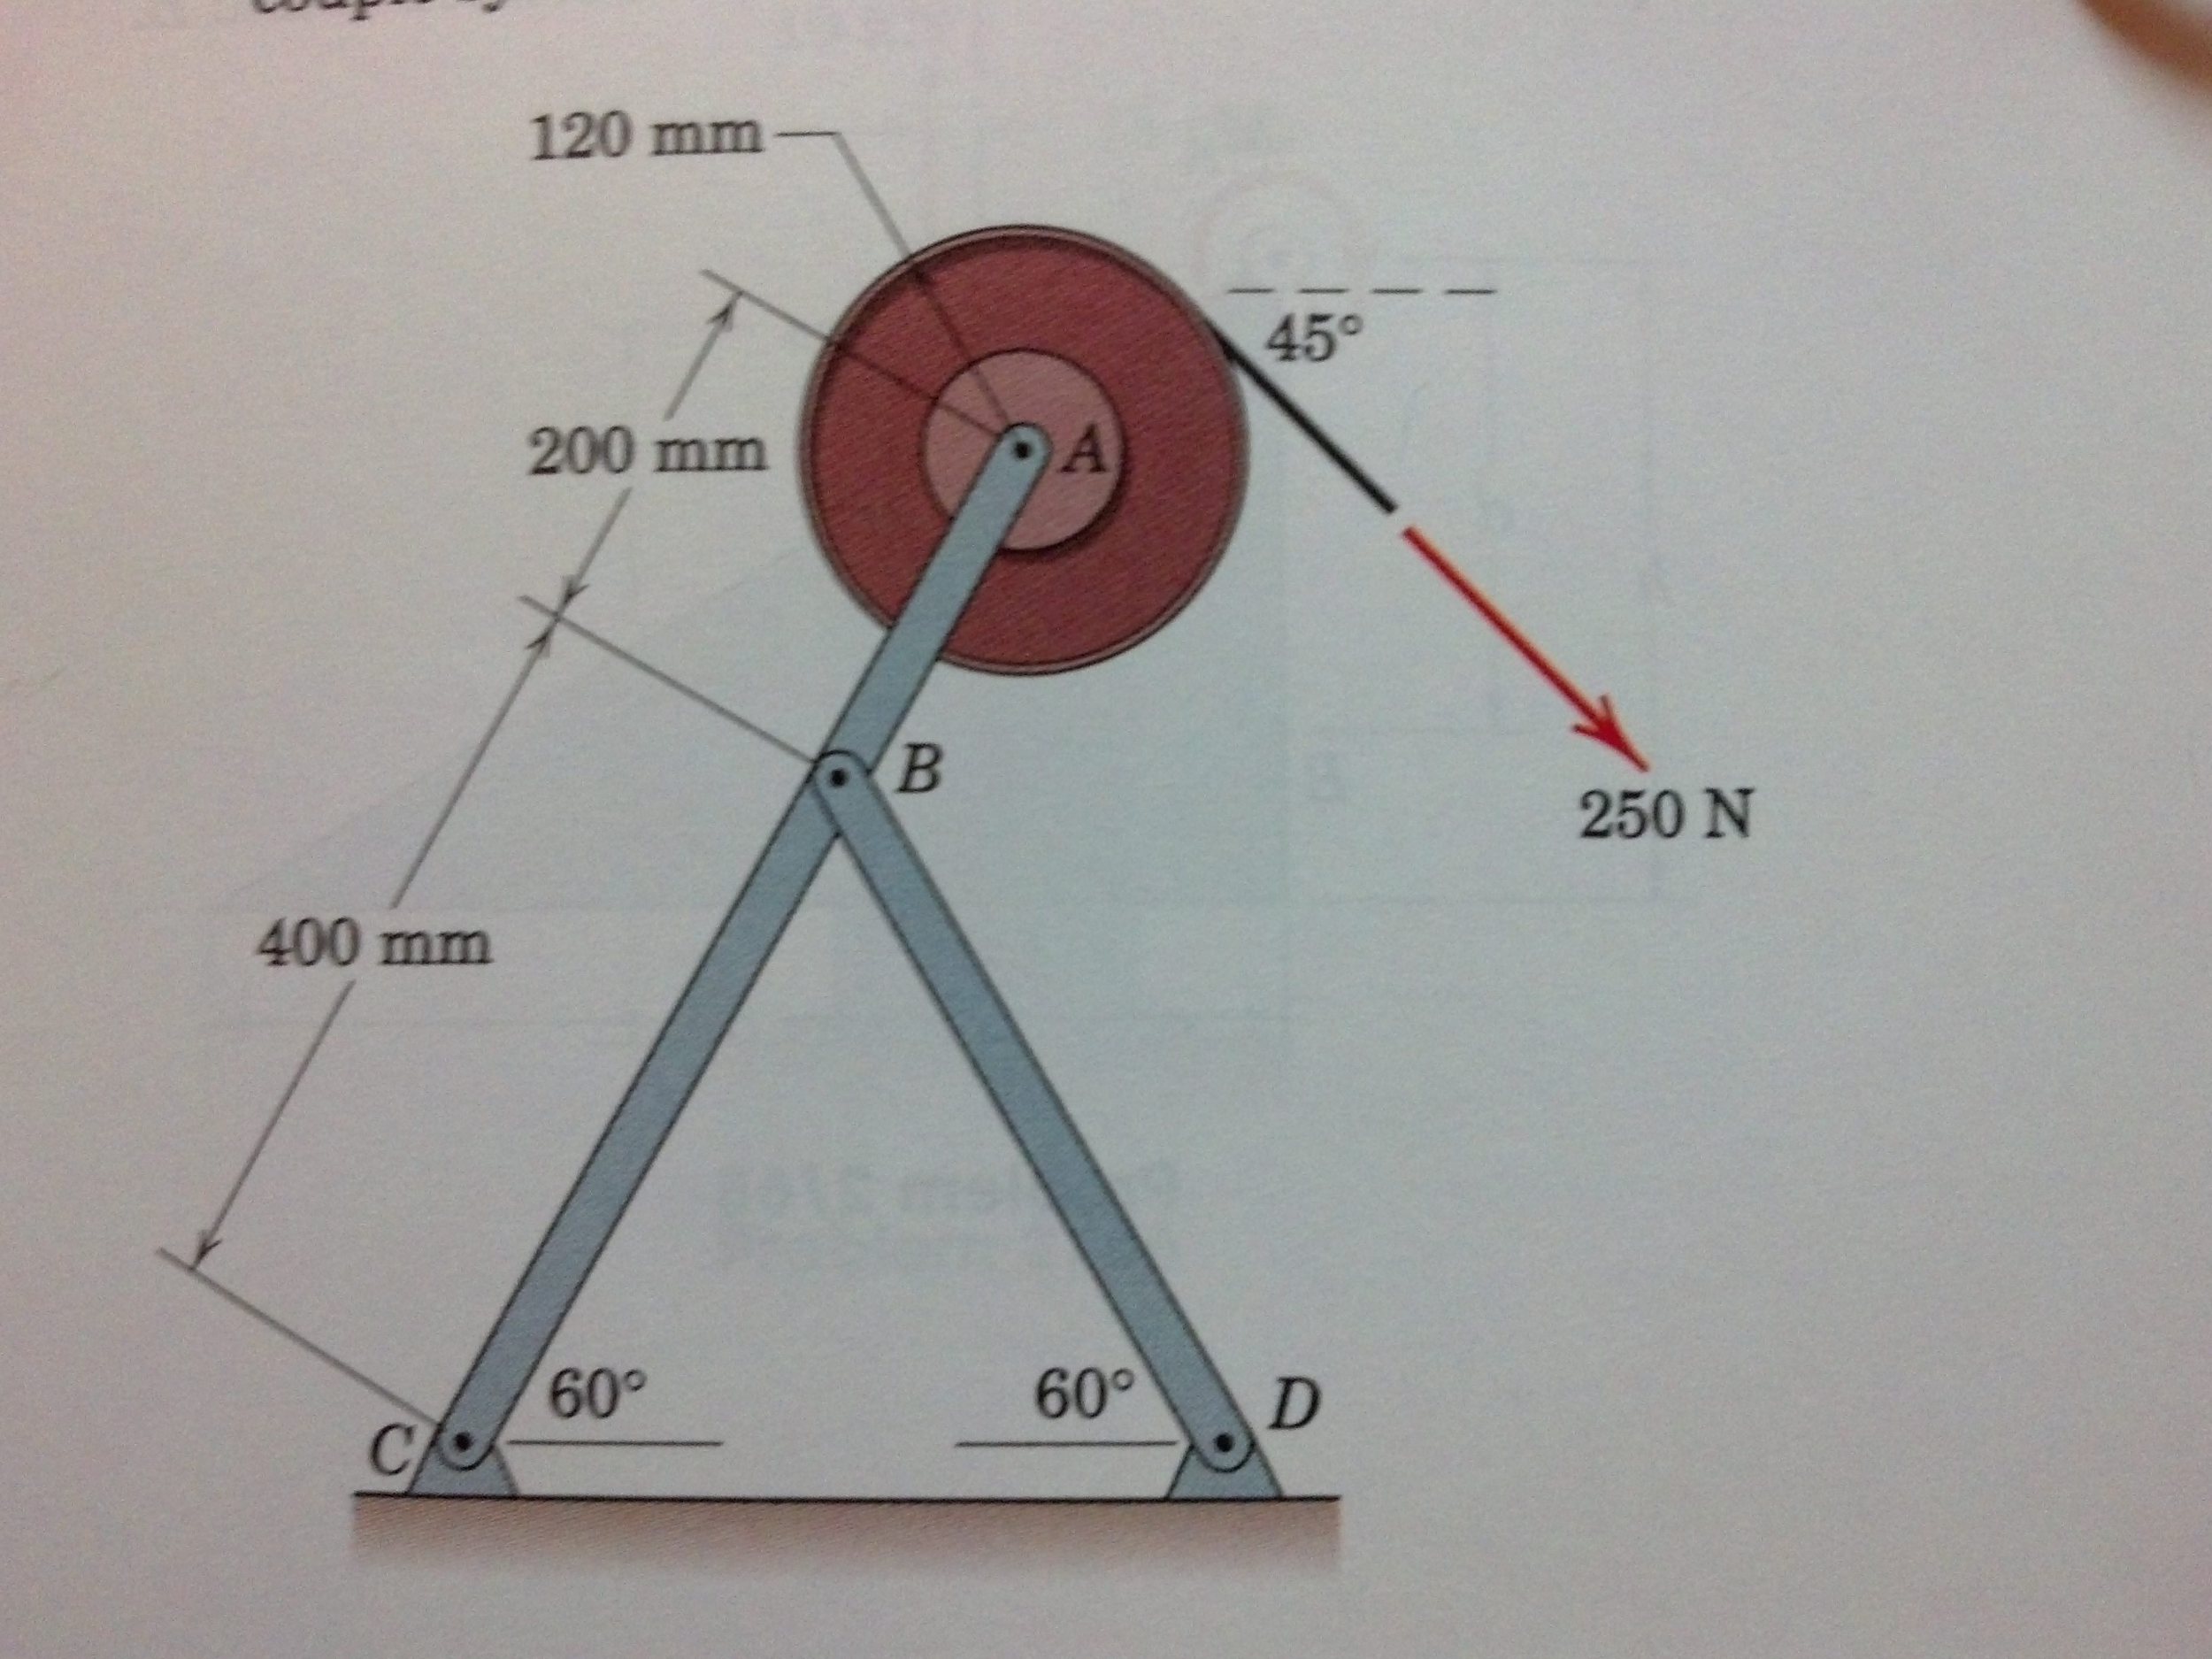 The 250-N tension is applied to a cord which is se